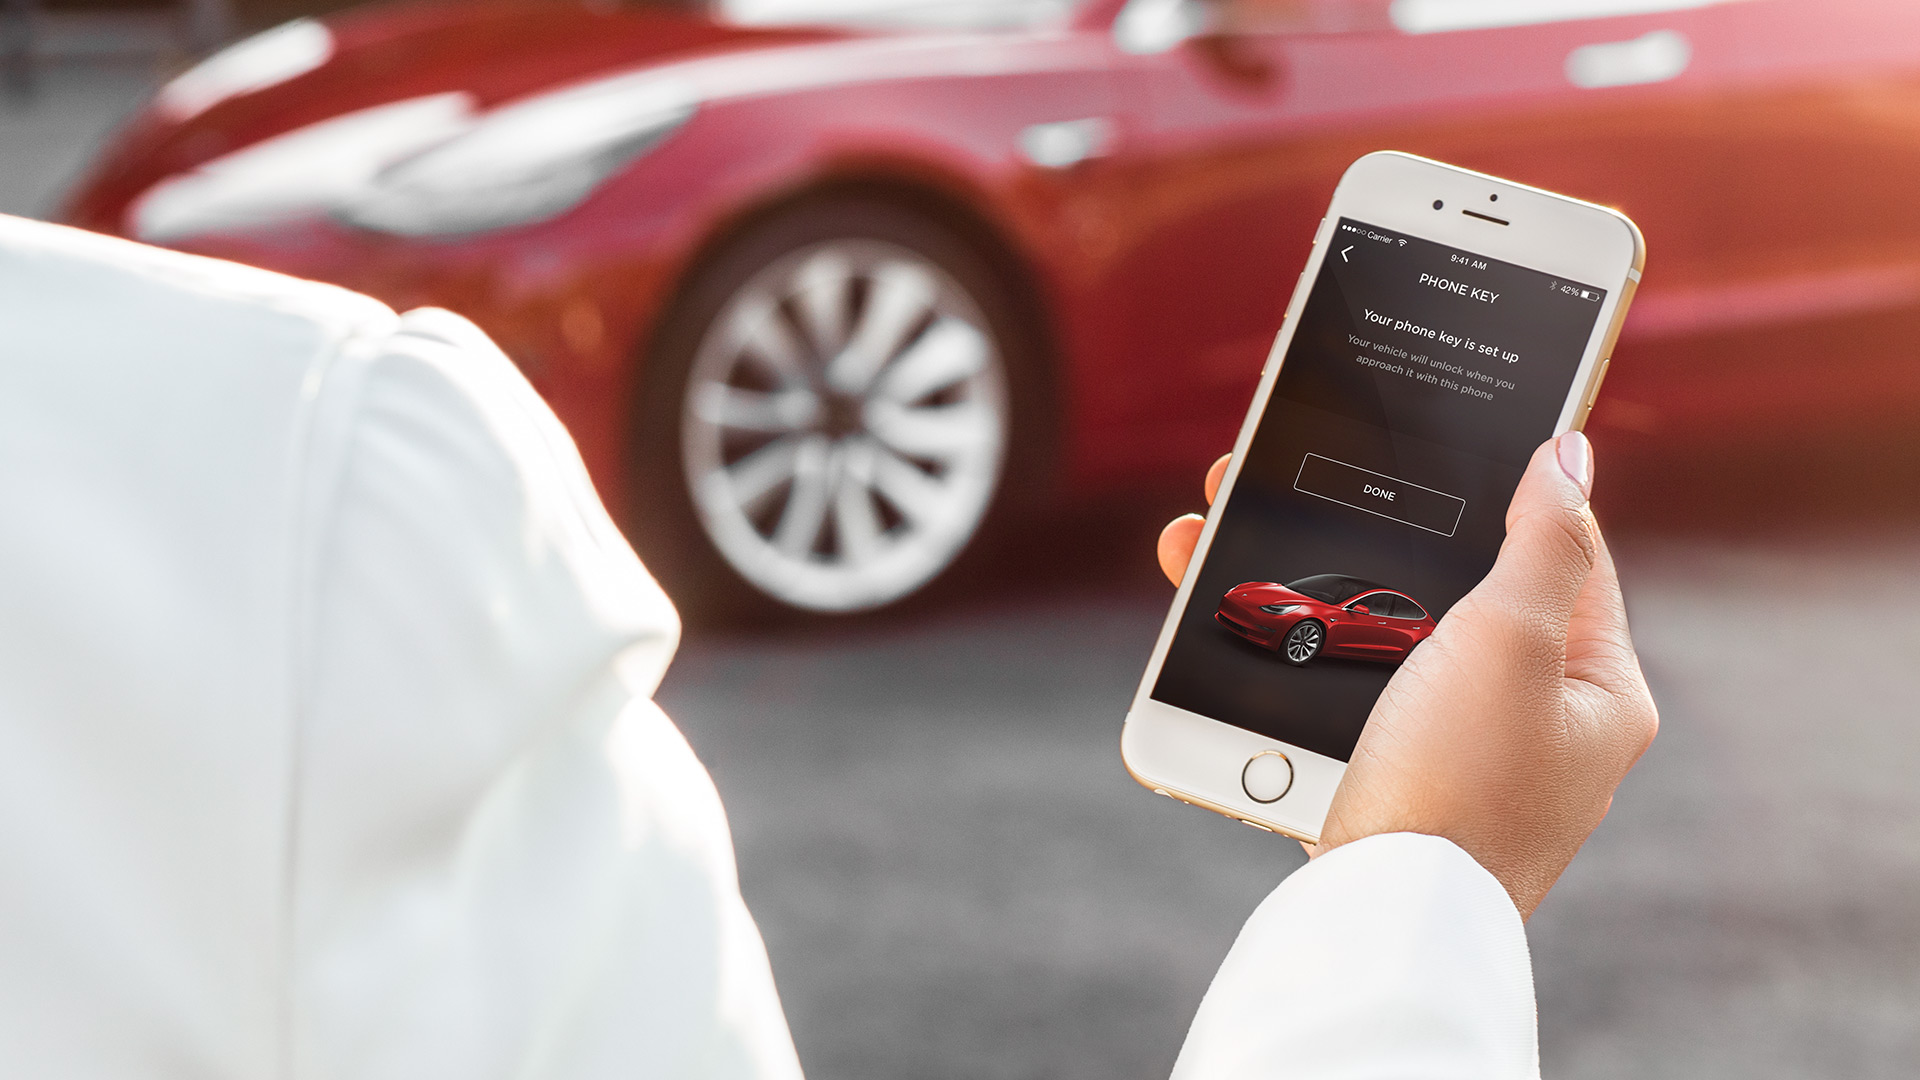 Tesla Model 3: Official HD photos show mobile app and key ...